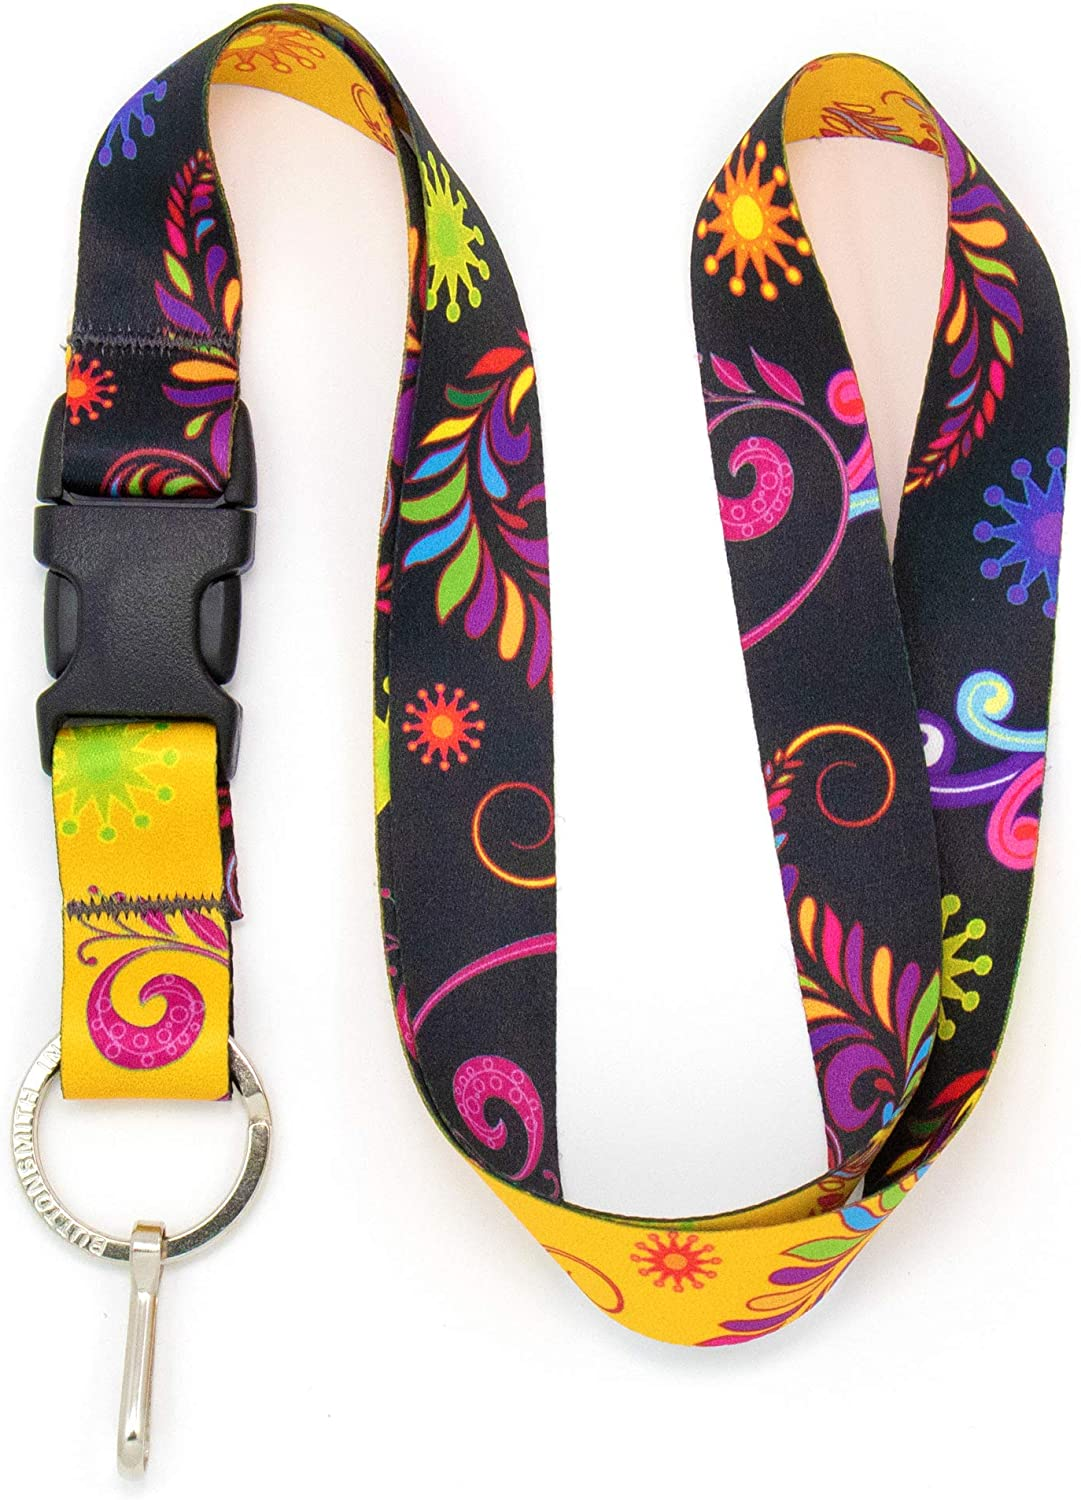 Buttonsmith Bright Floral Premium Lanyard - with Buckle and Flat Ring - Made in The USA